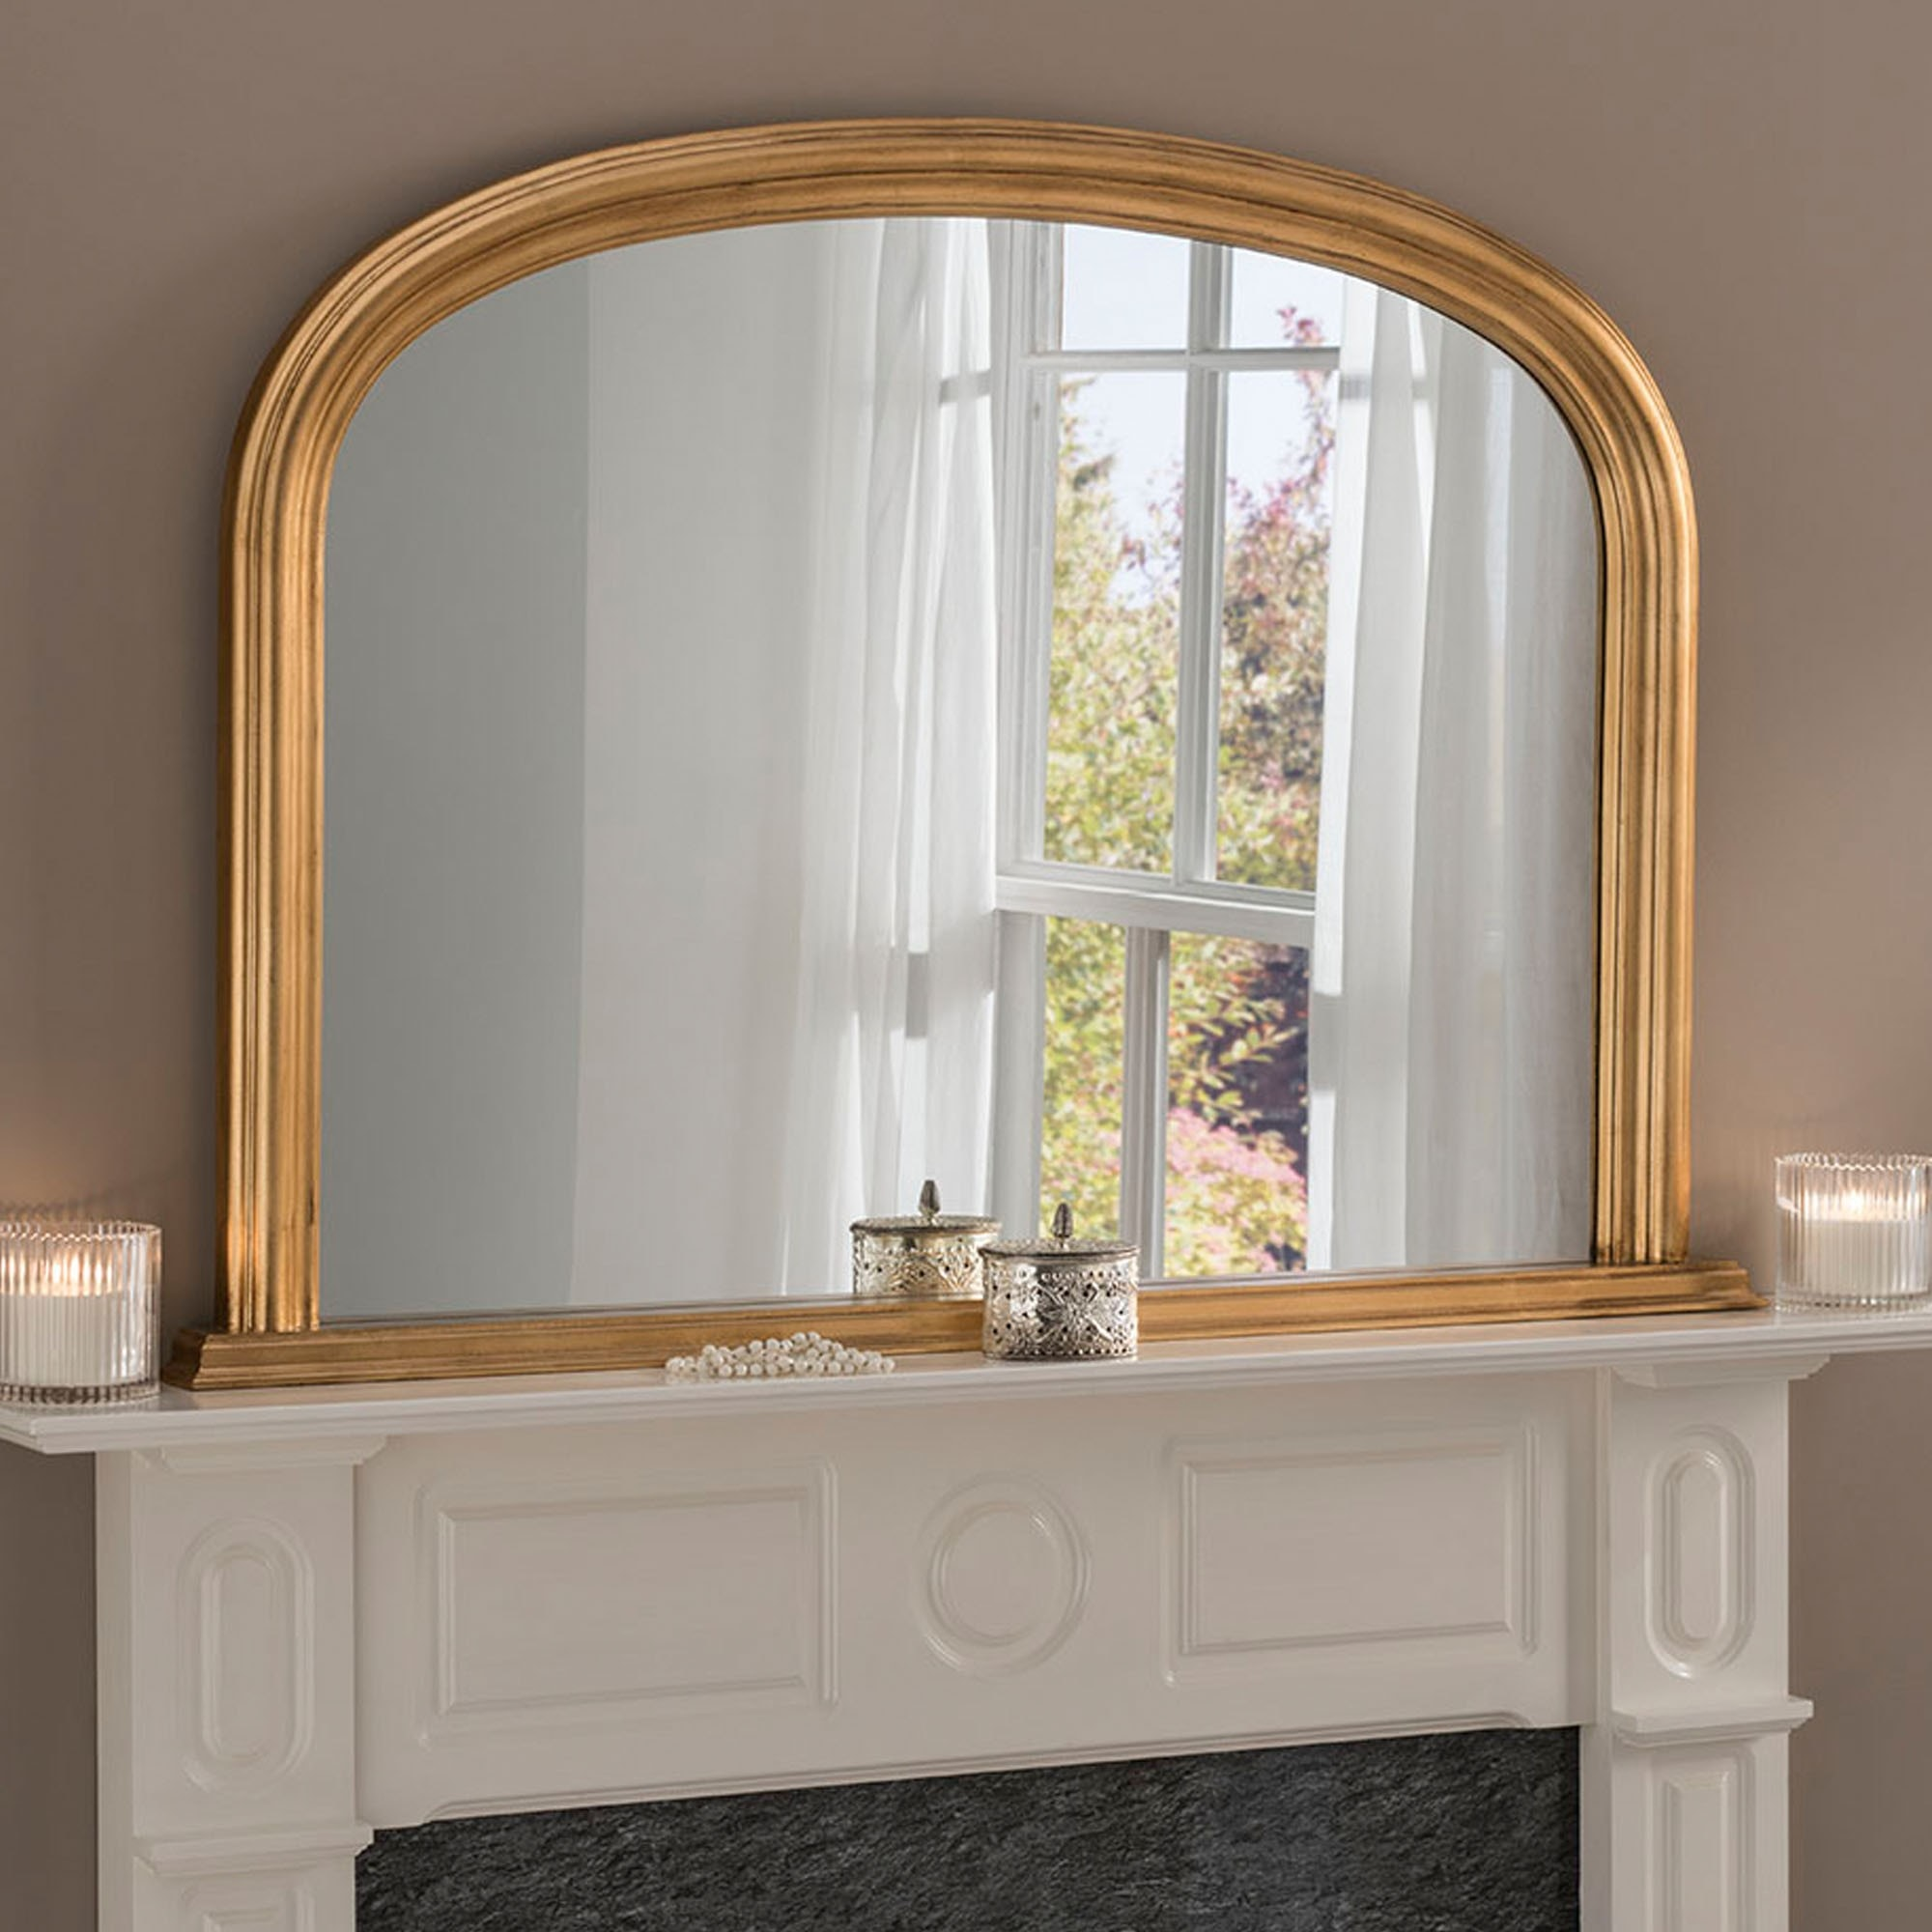 Antique French Style Gold Overmantle Mirror Overmantle Mirror